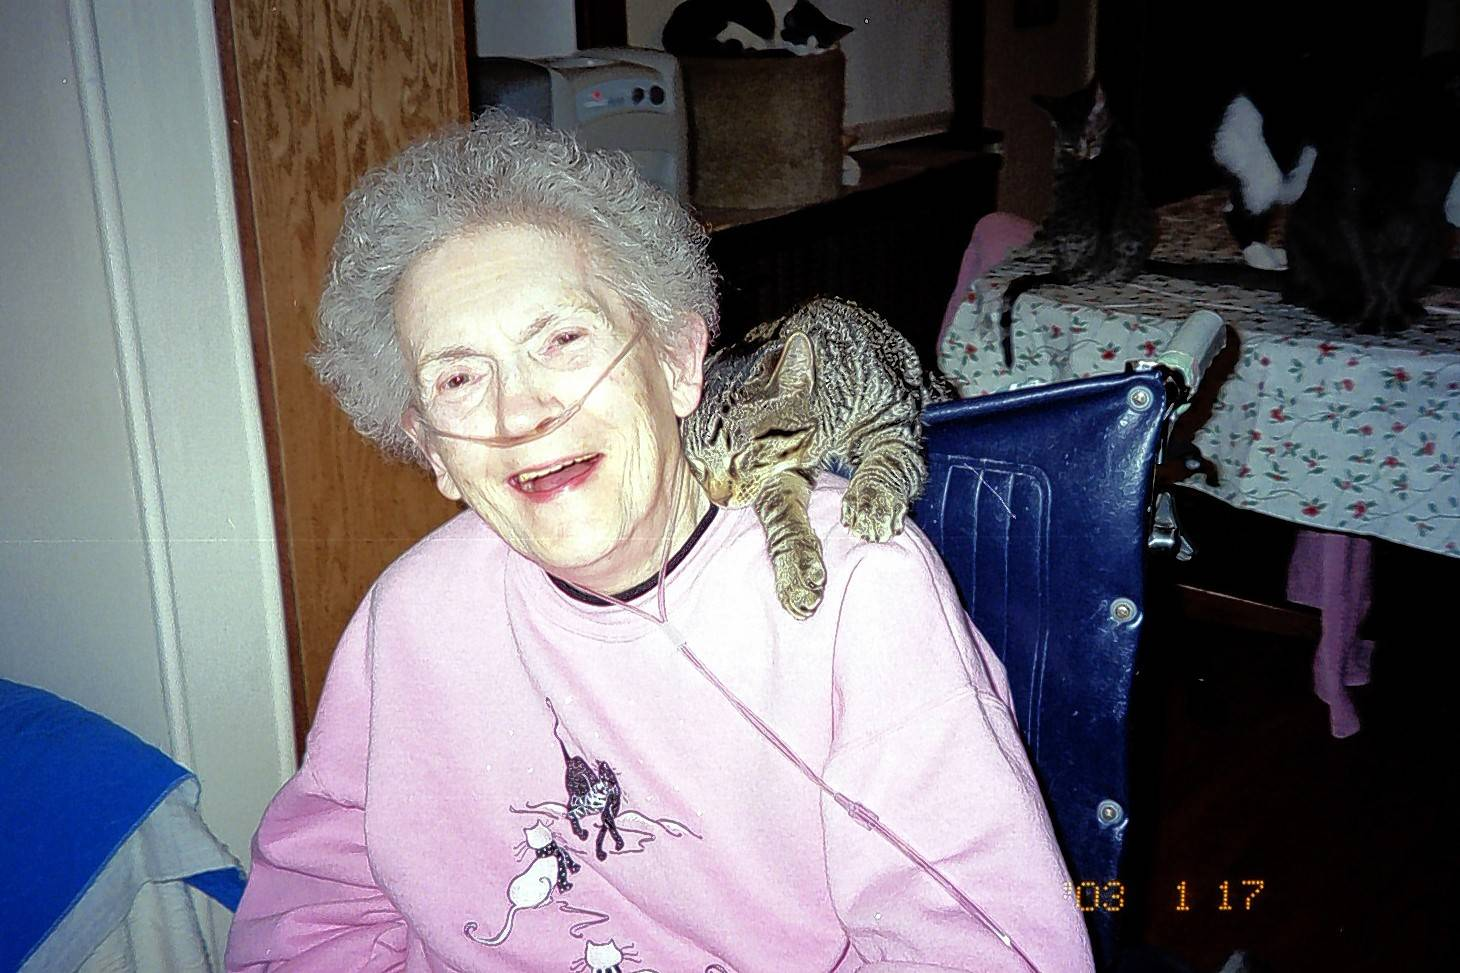 A former Touched By An Animal client is all smiles when getting a visit from Amorous.